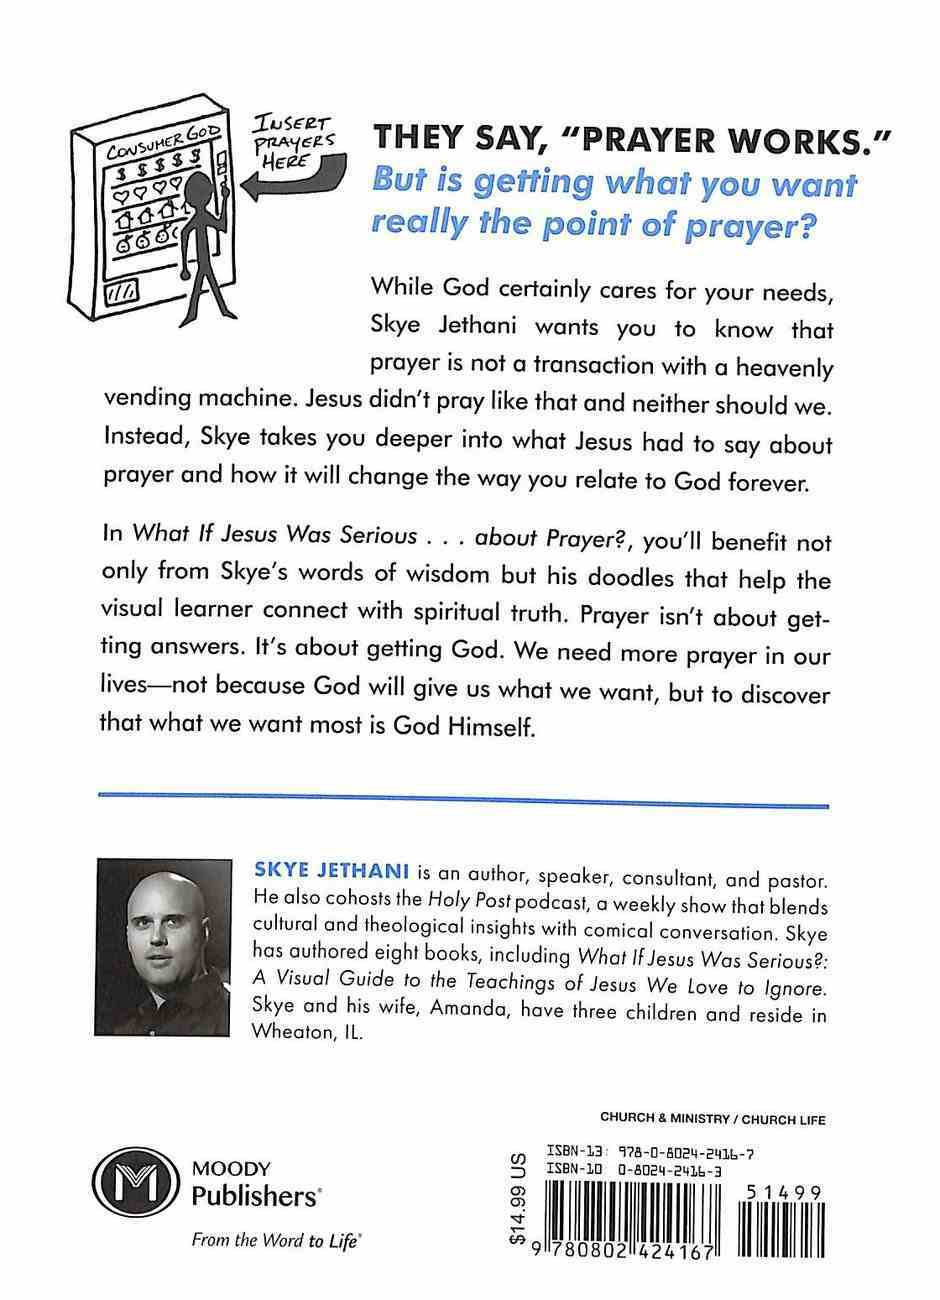 What If Jesus Was Serious ... About Prayer?: A Visual Guide to the Spiritual Practice Most of Us Get Wrong Paperback